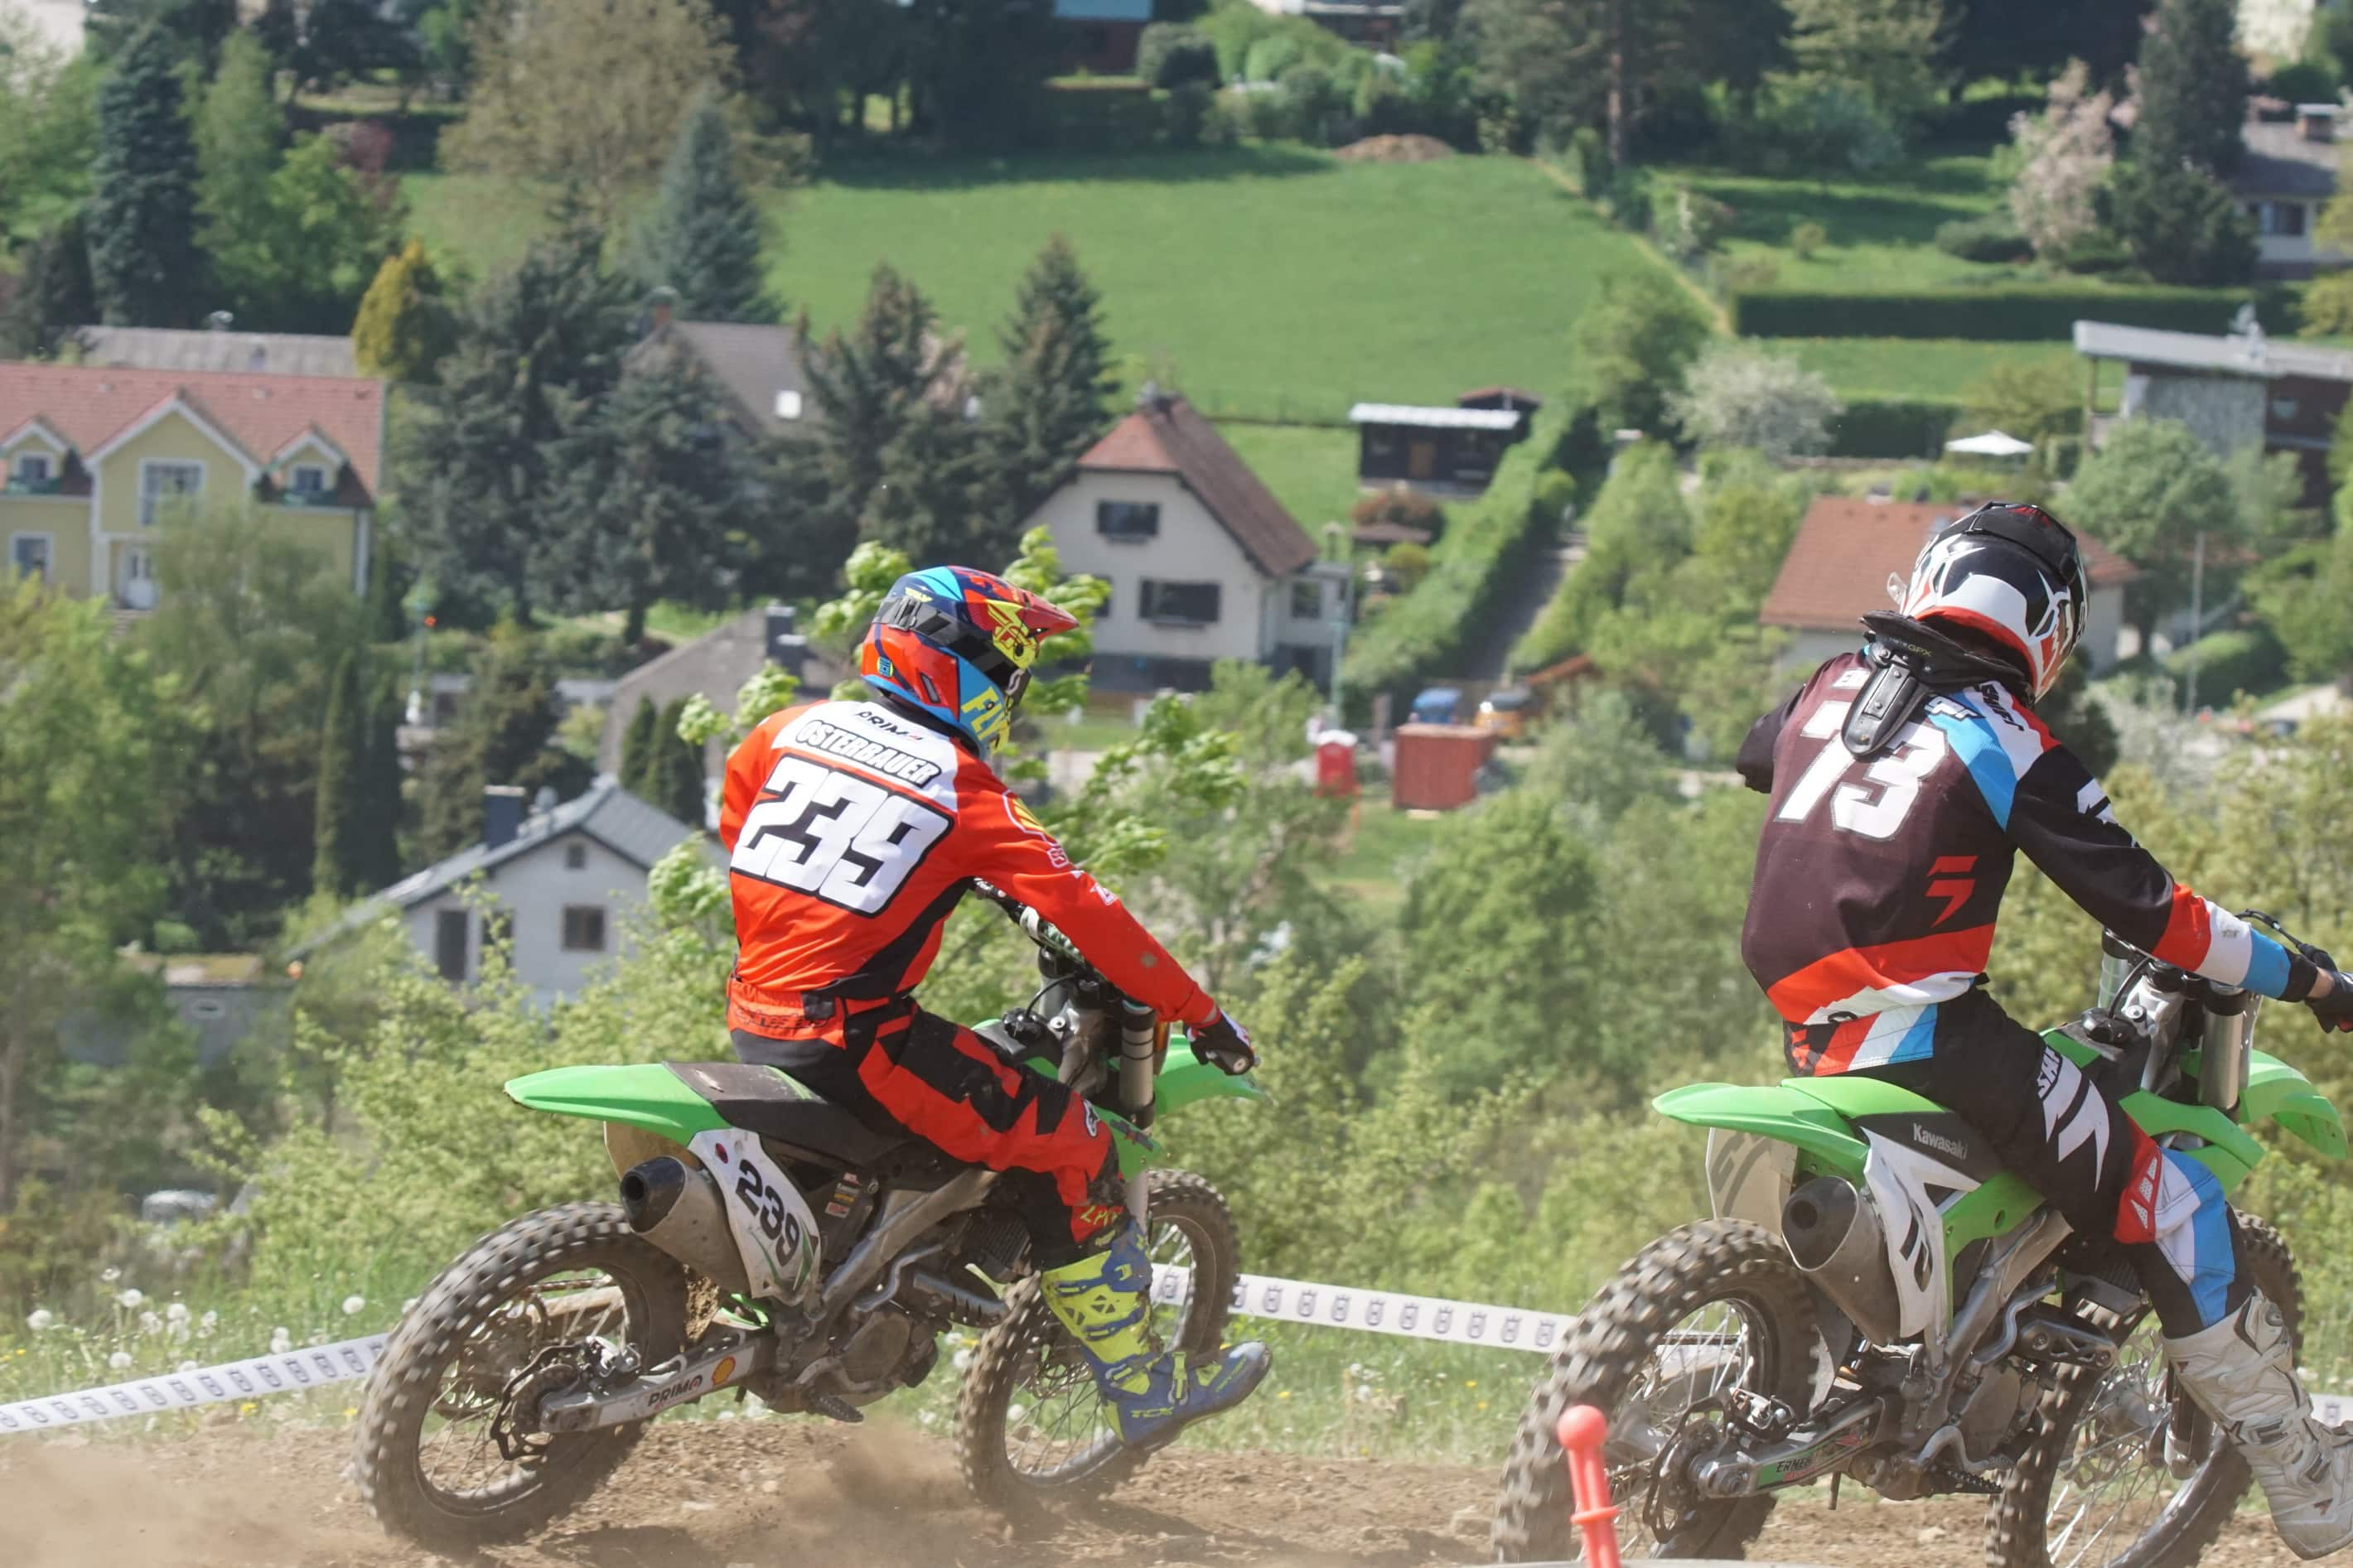 DSC 143_Moto Cross Sittendorf Teil1 am 29.04.2018